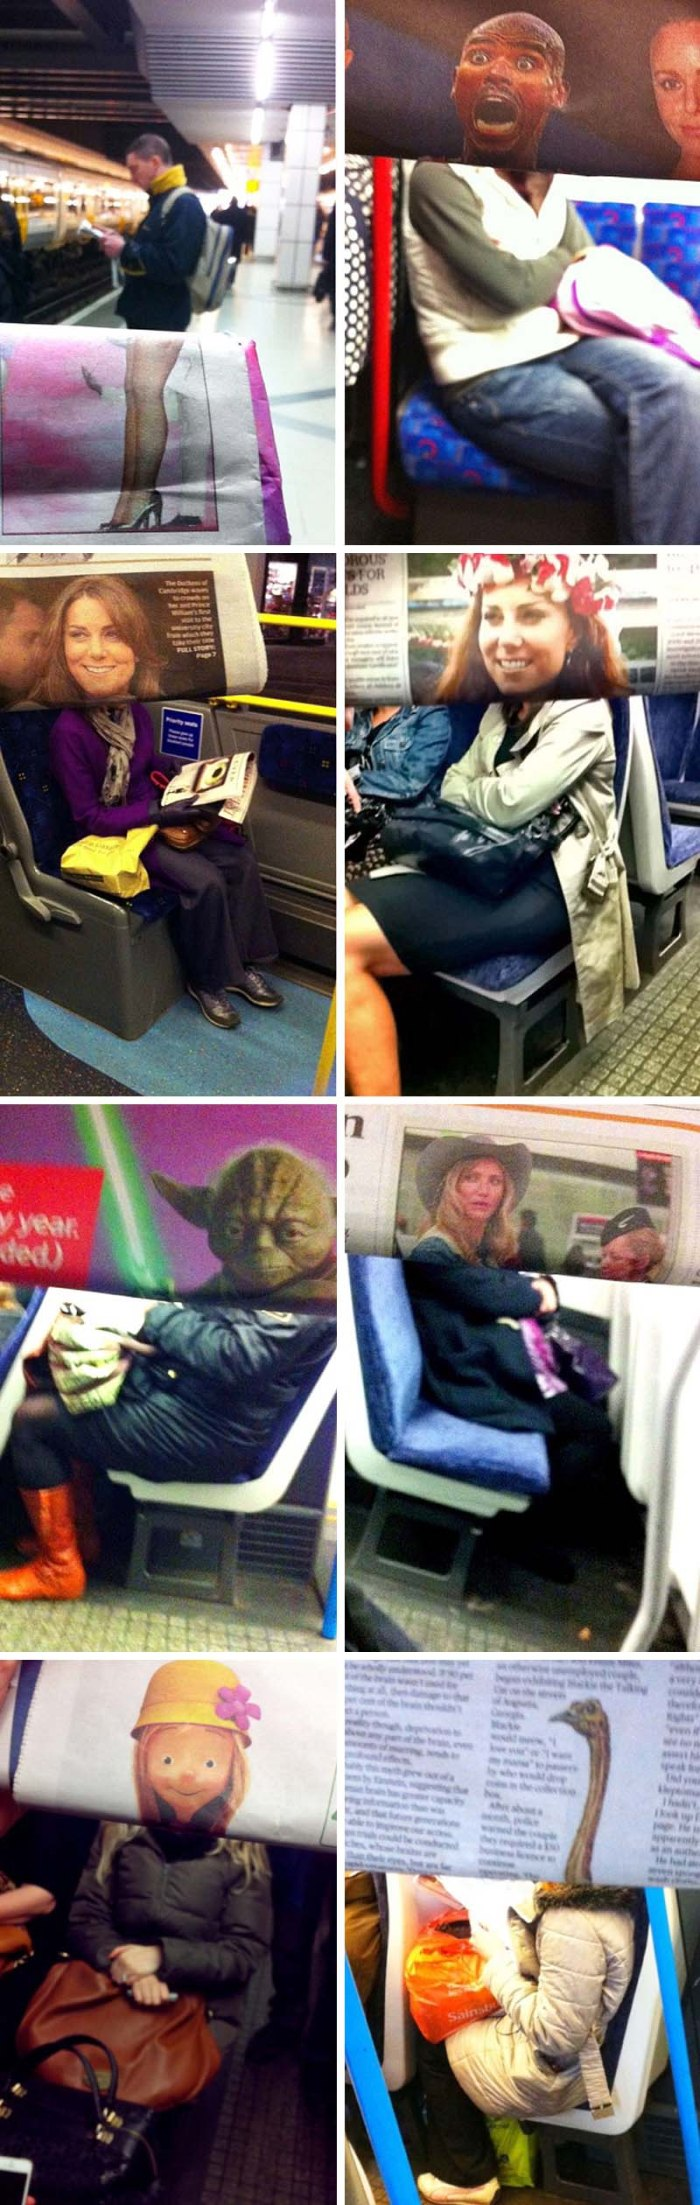 commuter photobombs other commuters with newspaper images, goofy photos, fun photos, humor, celebrities